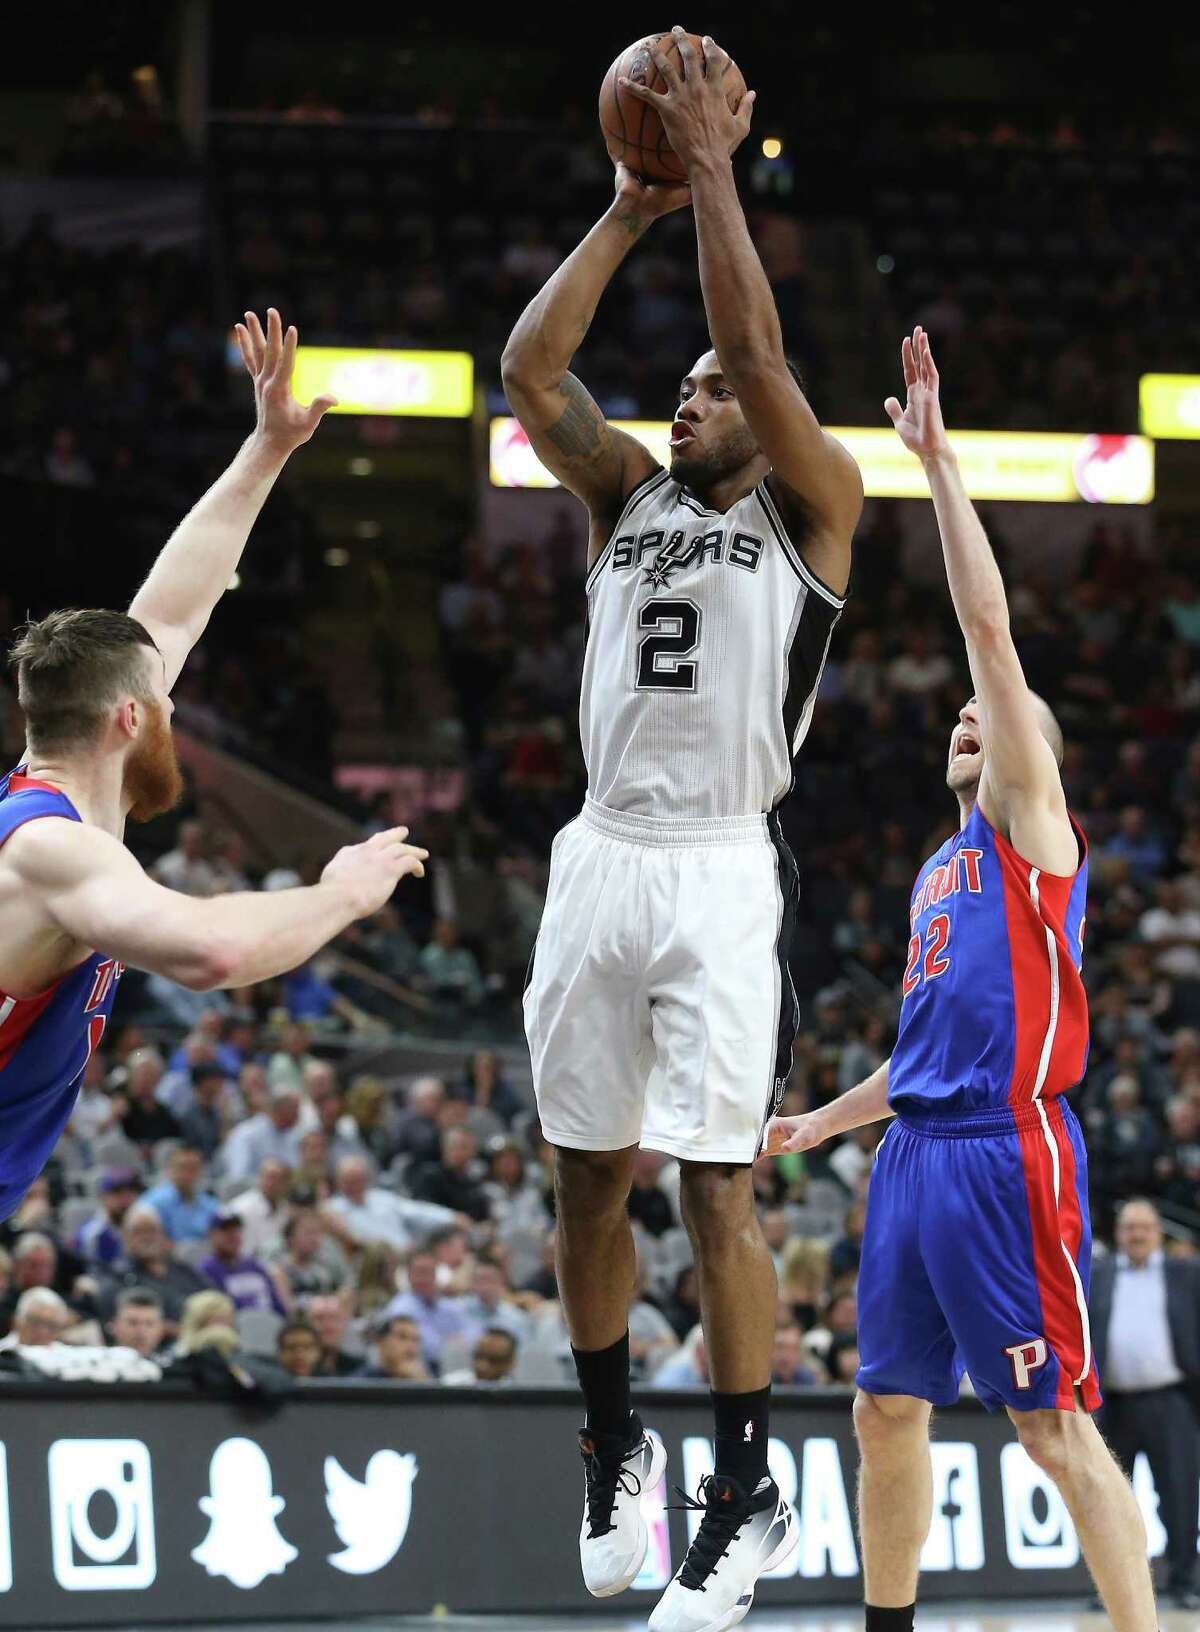 Kawhi Leonard hits a jumper as the Spurs host the Pistons at the AT&T Center on March 2, 2016.